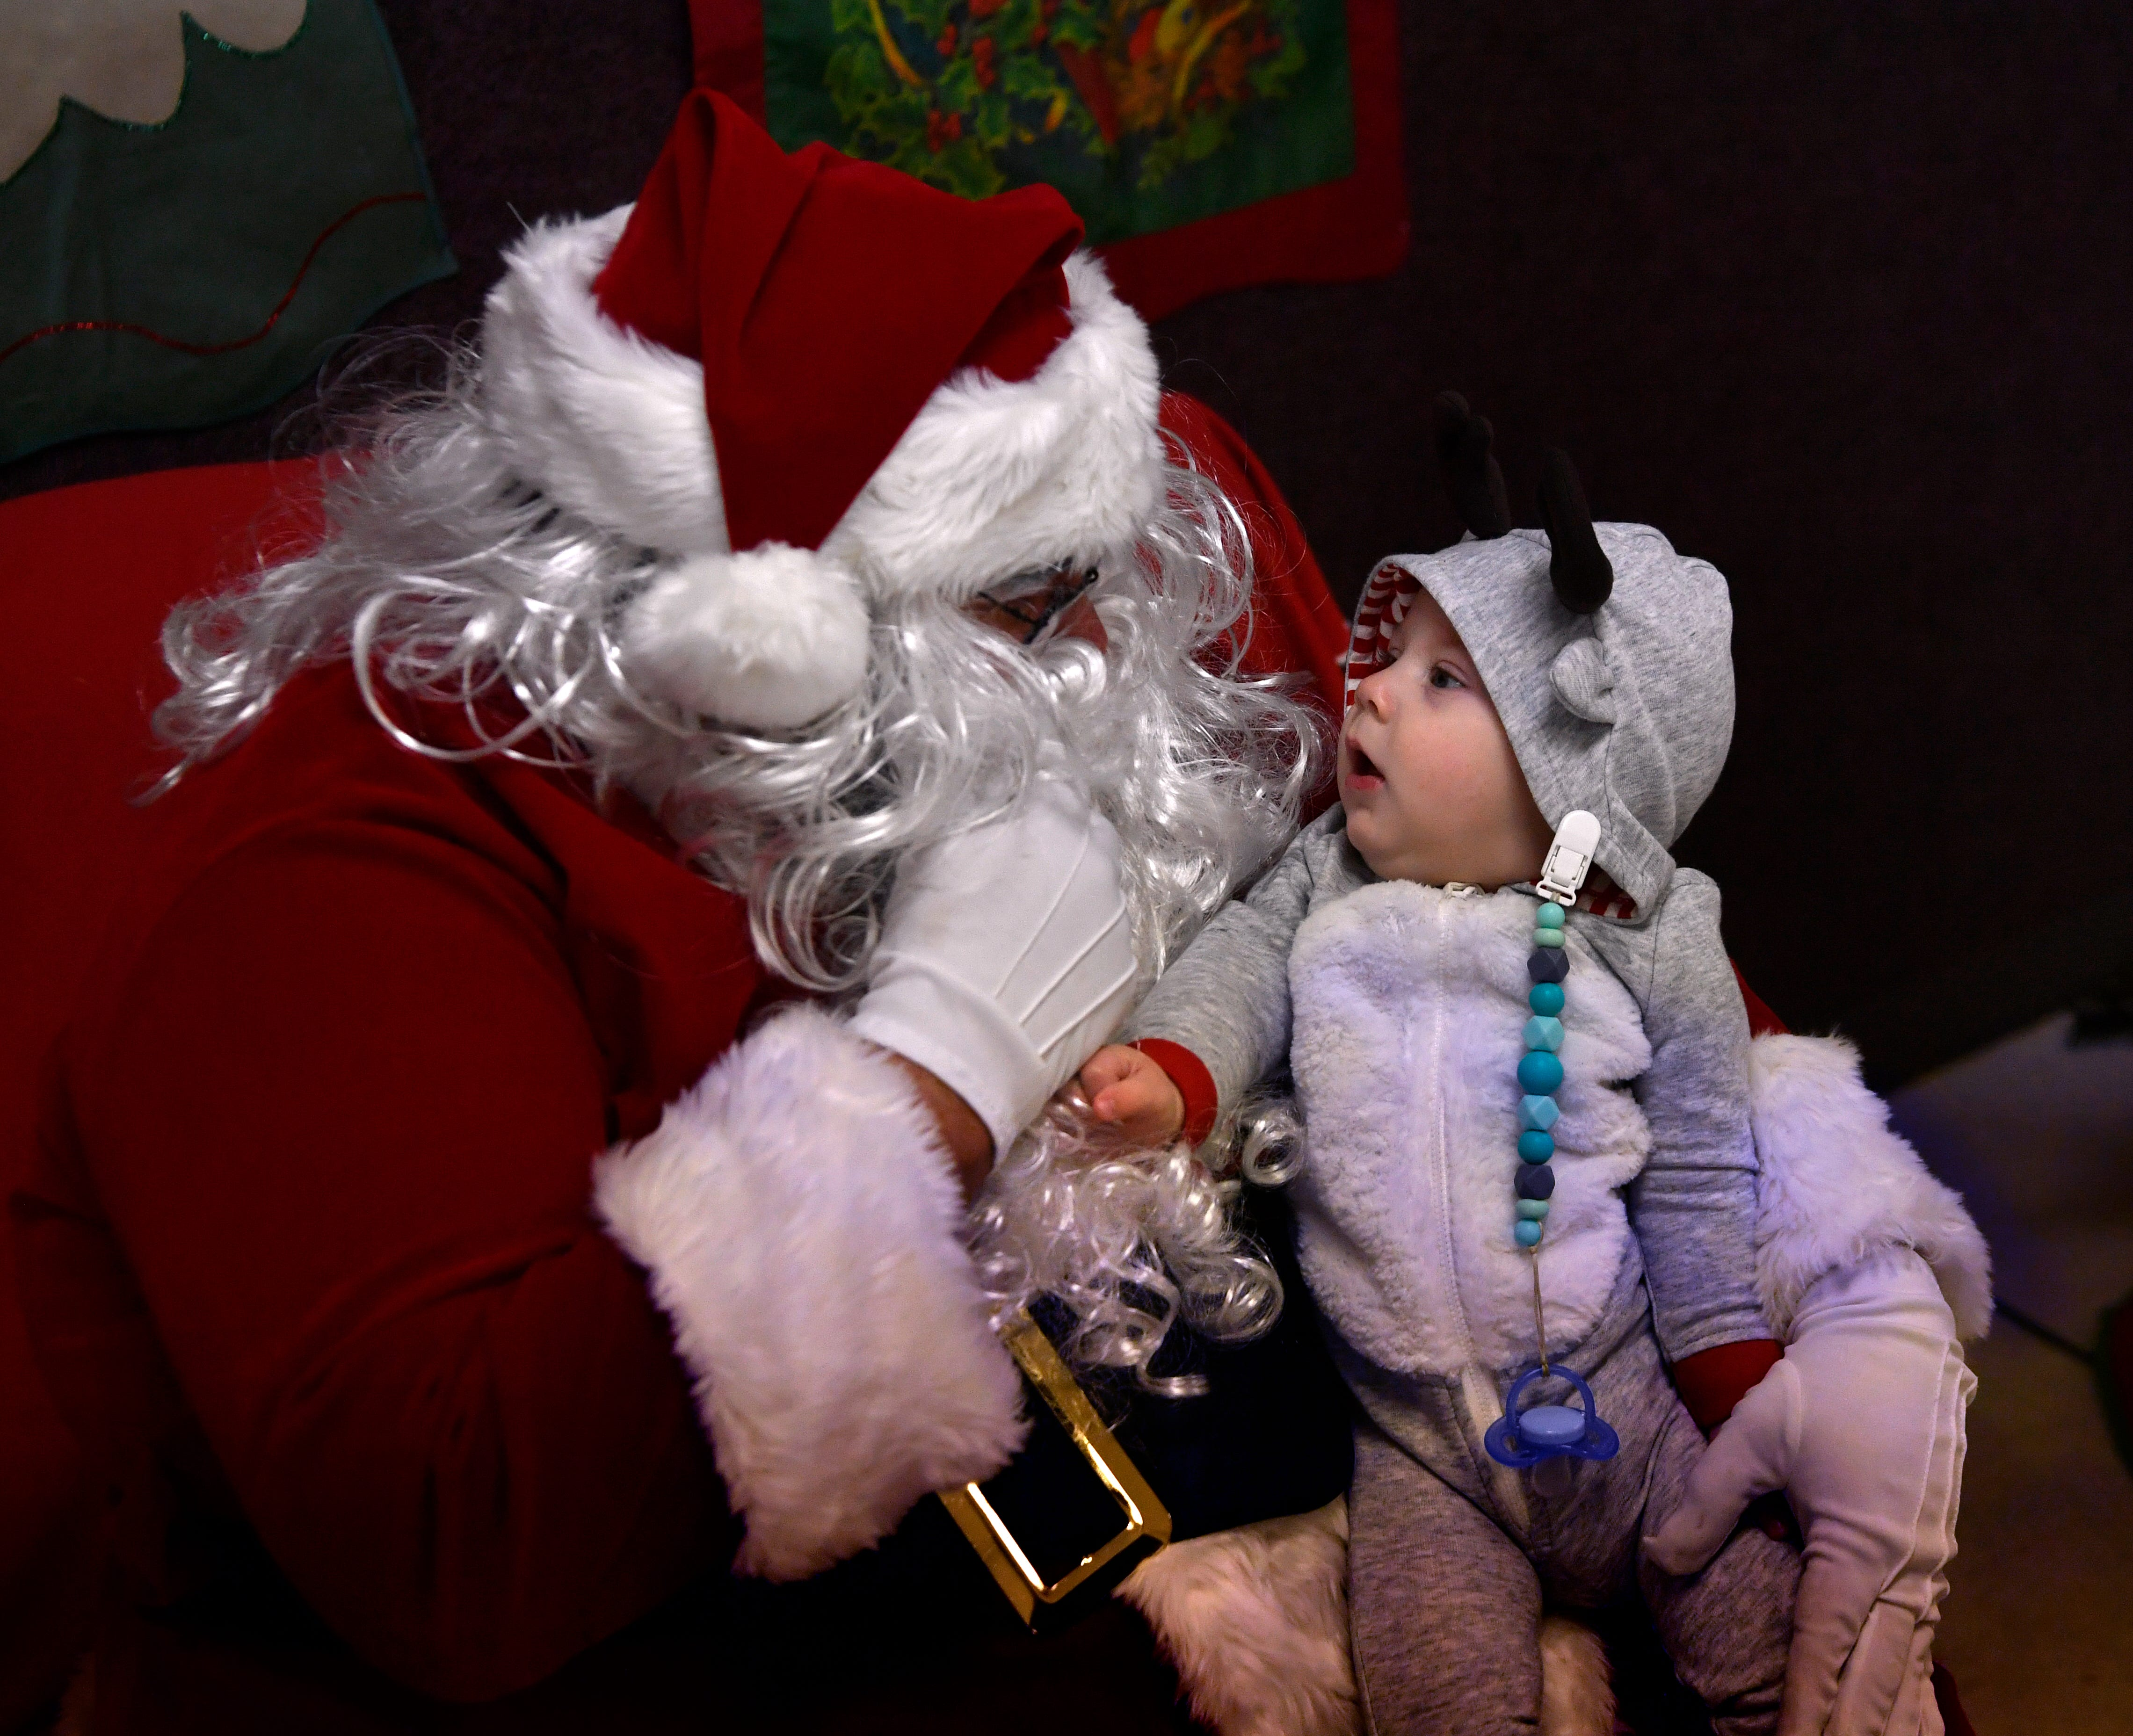 Carson Barriere, 6 months, grabs a fistful of Santa's beard as he gets a closer view Thursday. After the Christmas parade, spectators moved to the Tye Community Center for time with Santa, a gift, hot chocolate and pizza.